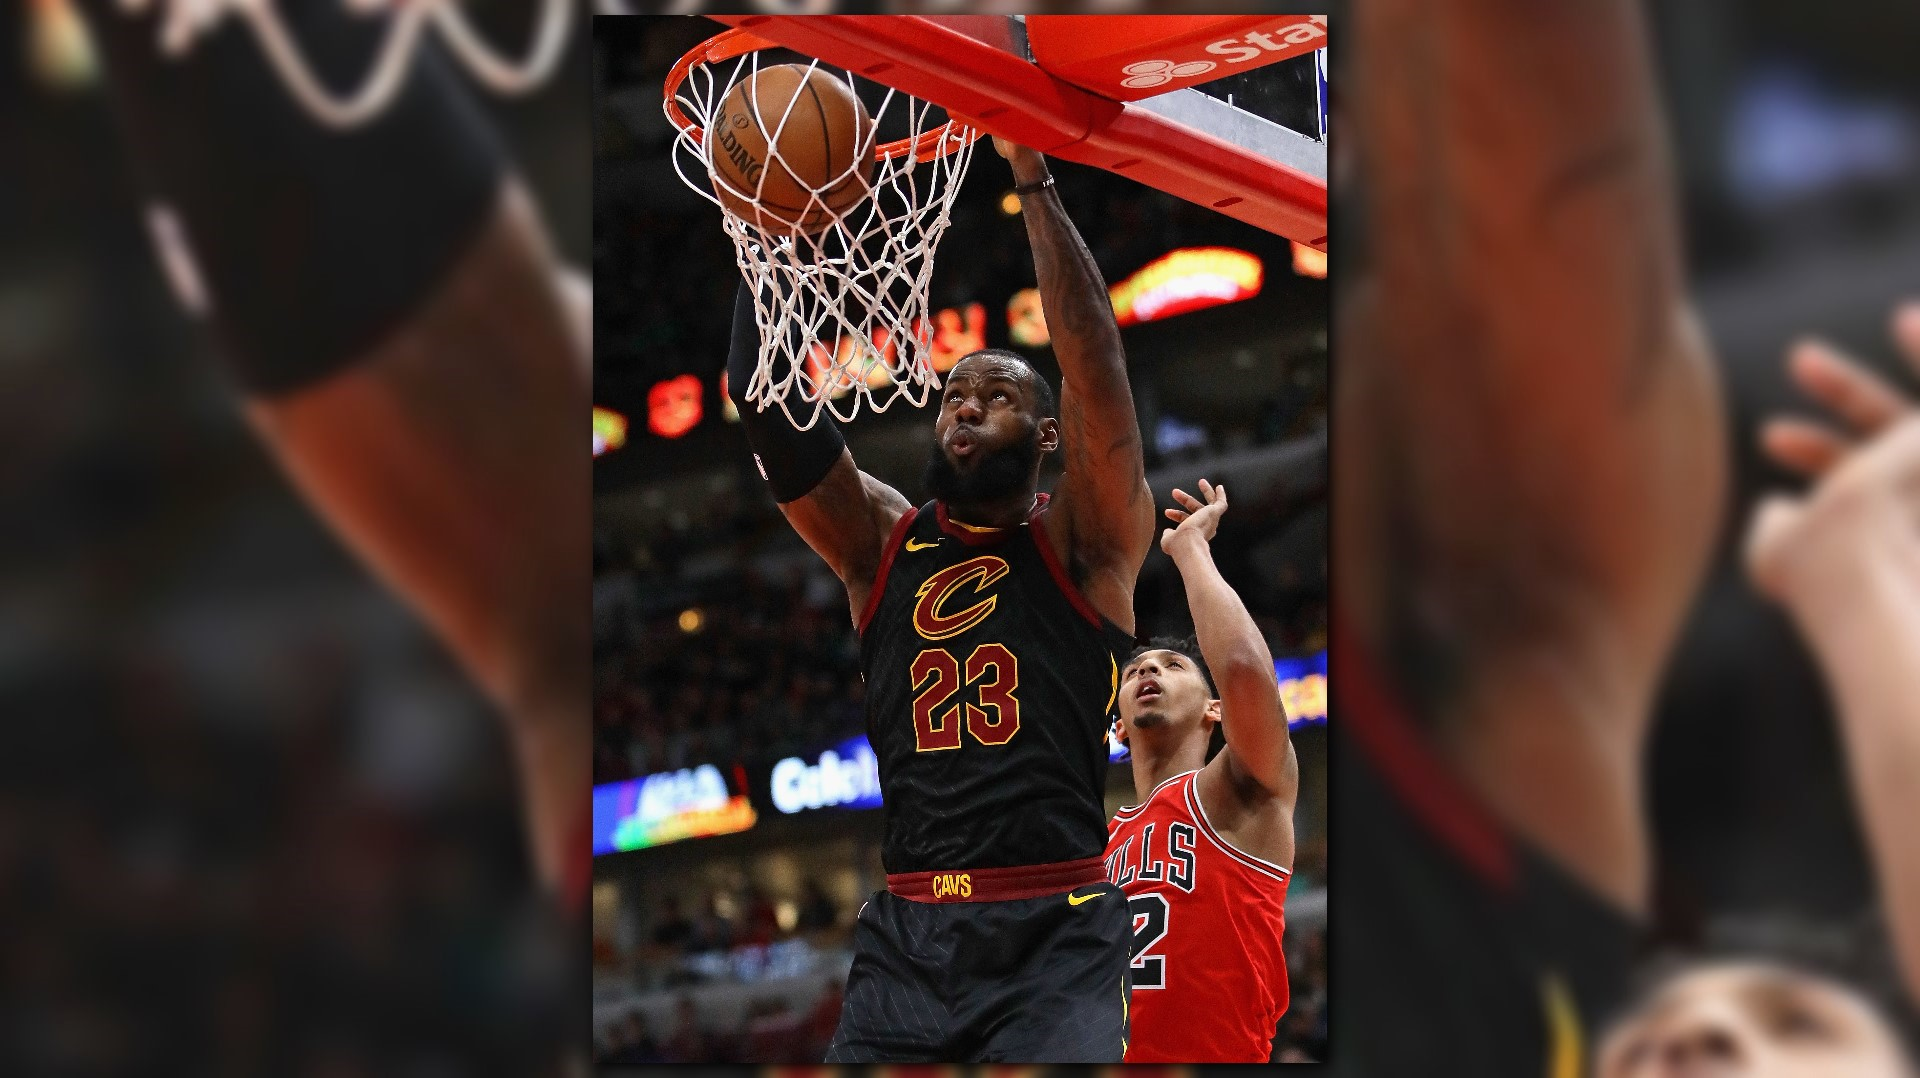 wkyc.com | LeBron James gets 33 points in triple-double, Cleveland Cavaliers beat Chicago Bulls